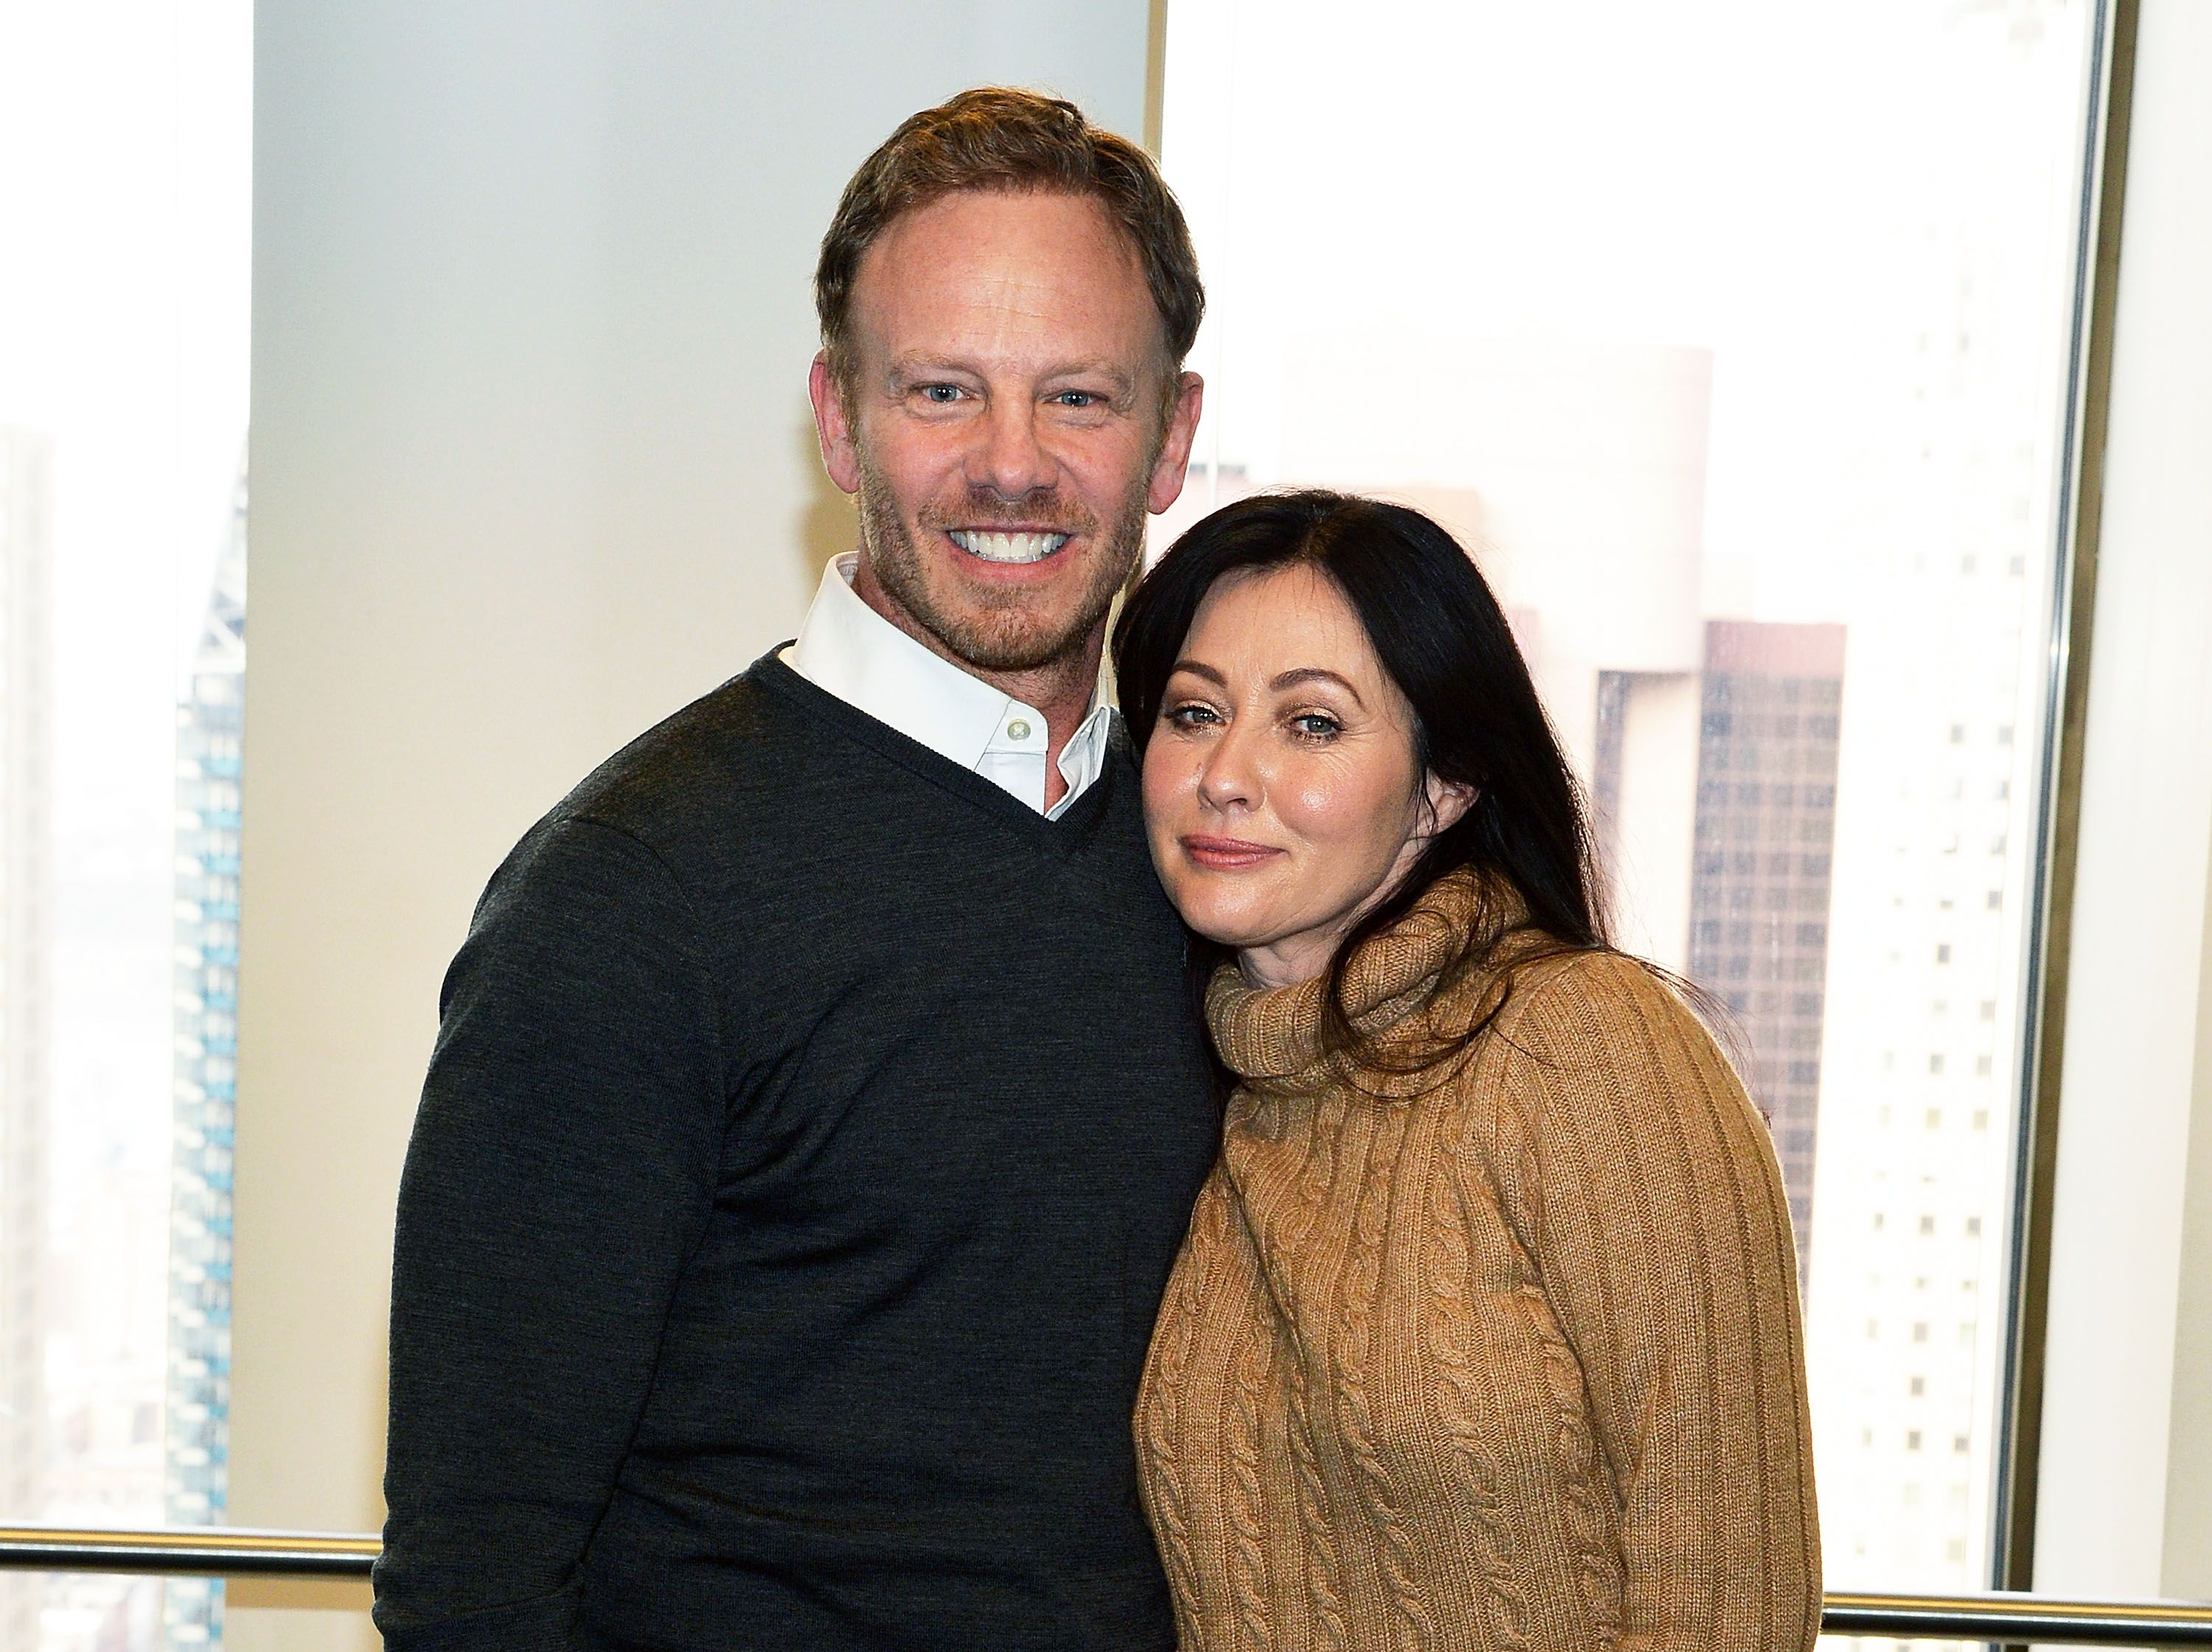 Actors Ian Ziering and Shannen Doherty at SiriusXM Studios on January 15, 2015 in New York City | Photo: Getty Images